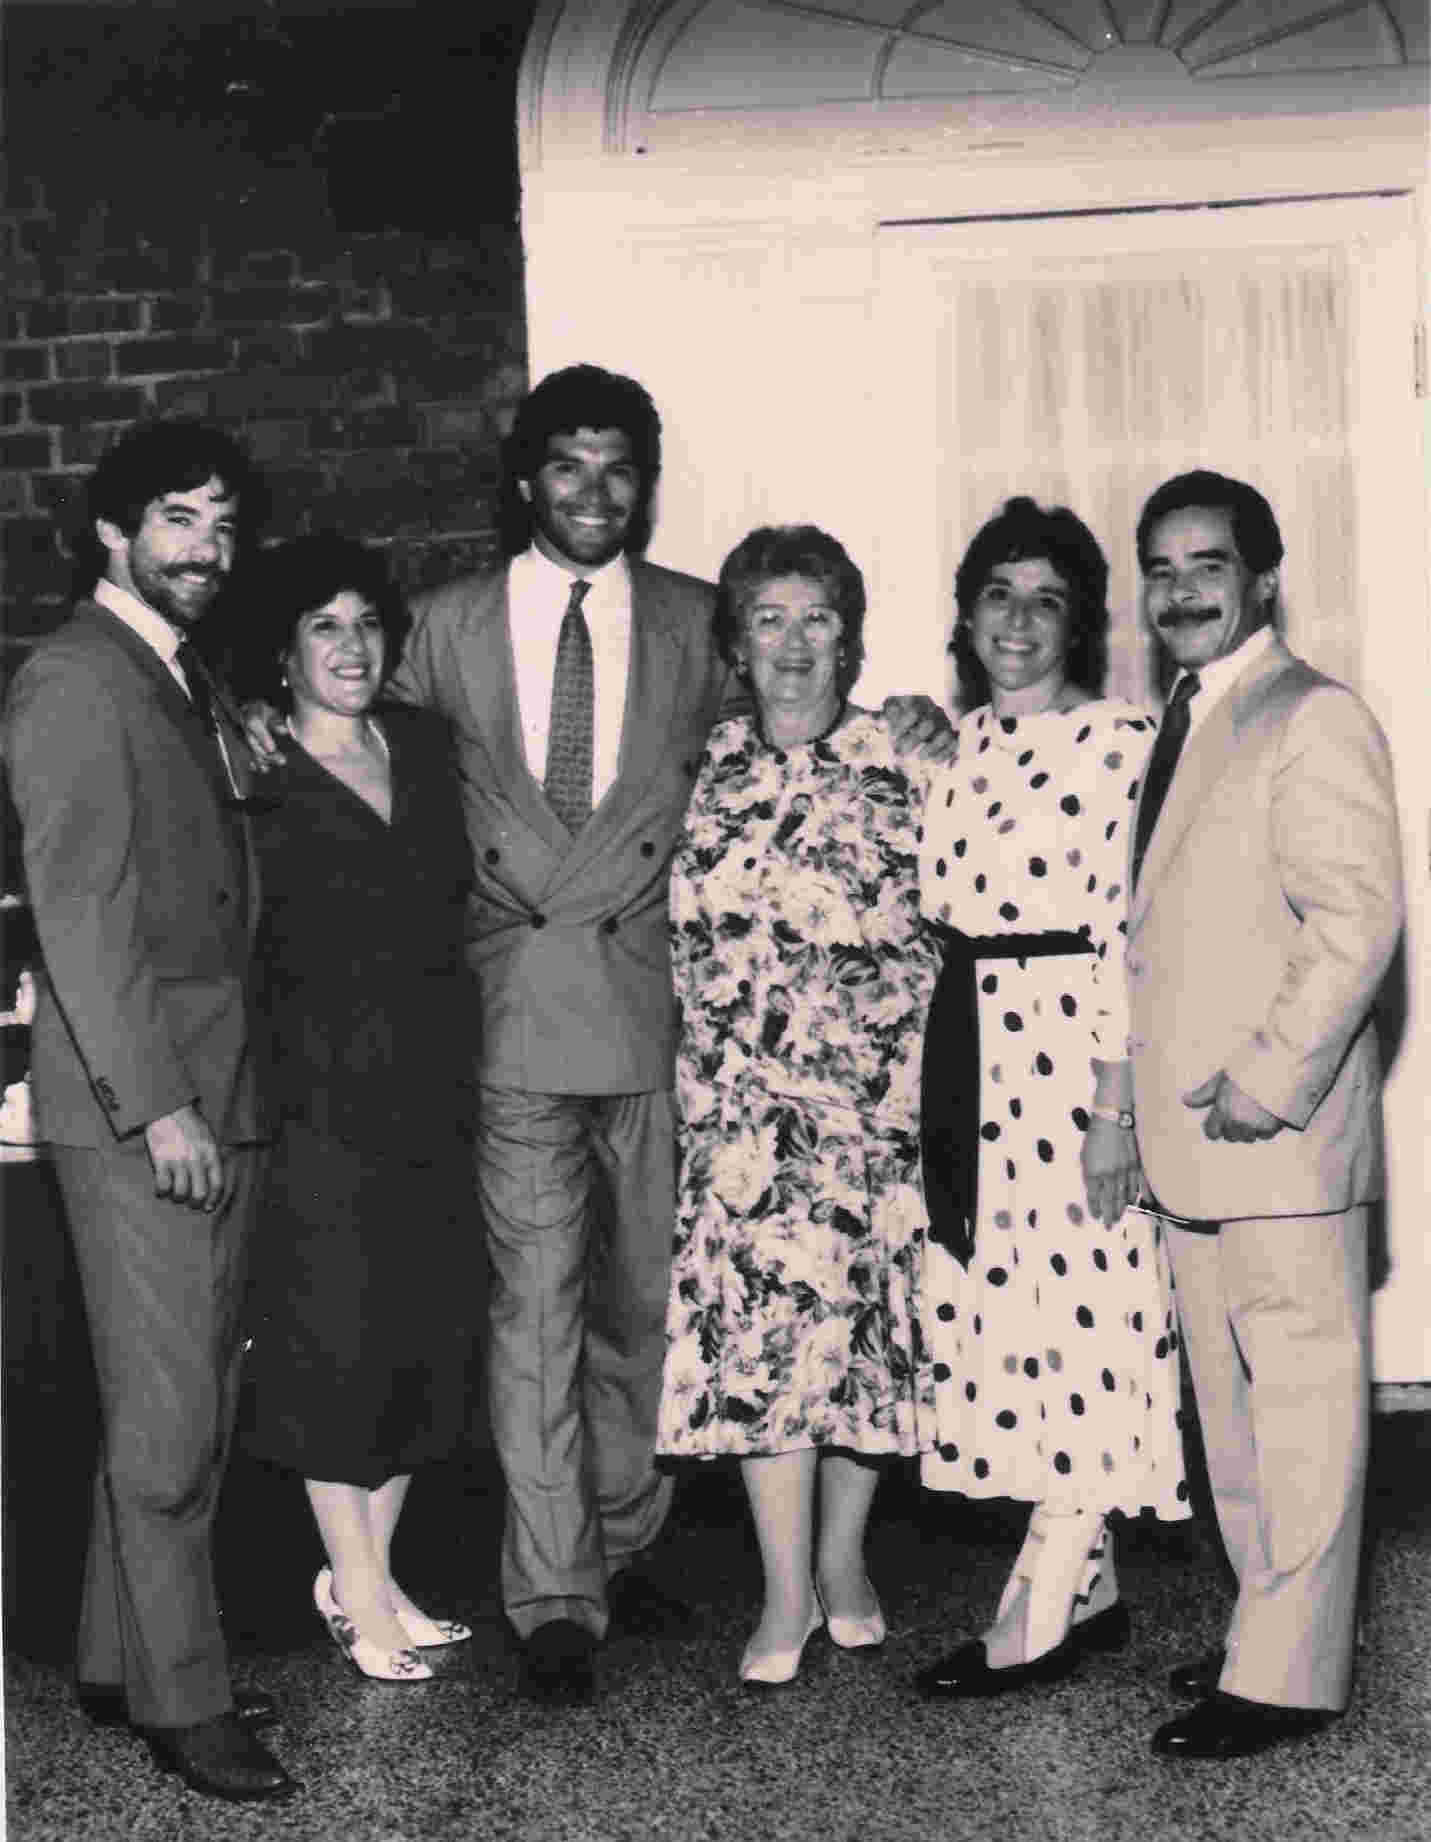 Vintage photo of, from left to right, Geraldo, sister Irene, brother Craig, mother Lillian, sister Sharon, and brother Wilfredo.  All of Geraldo's' brothers and sisters are present.